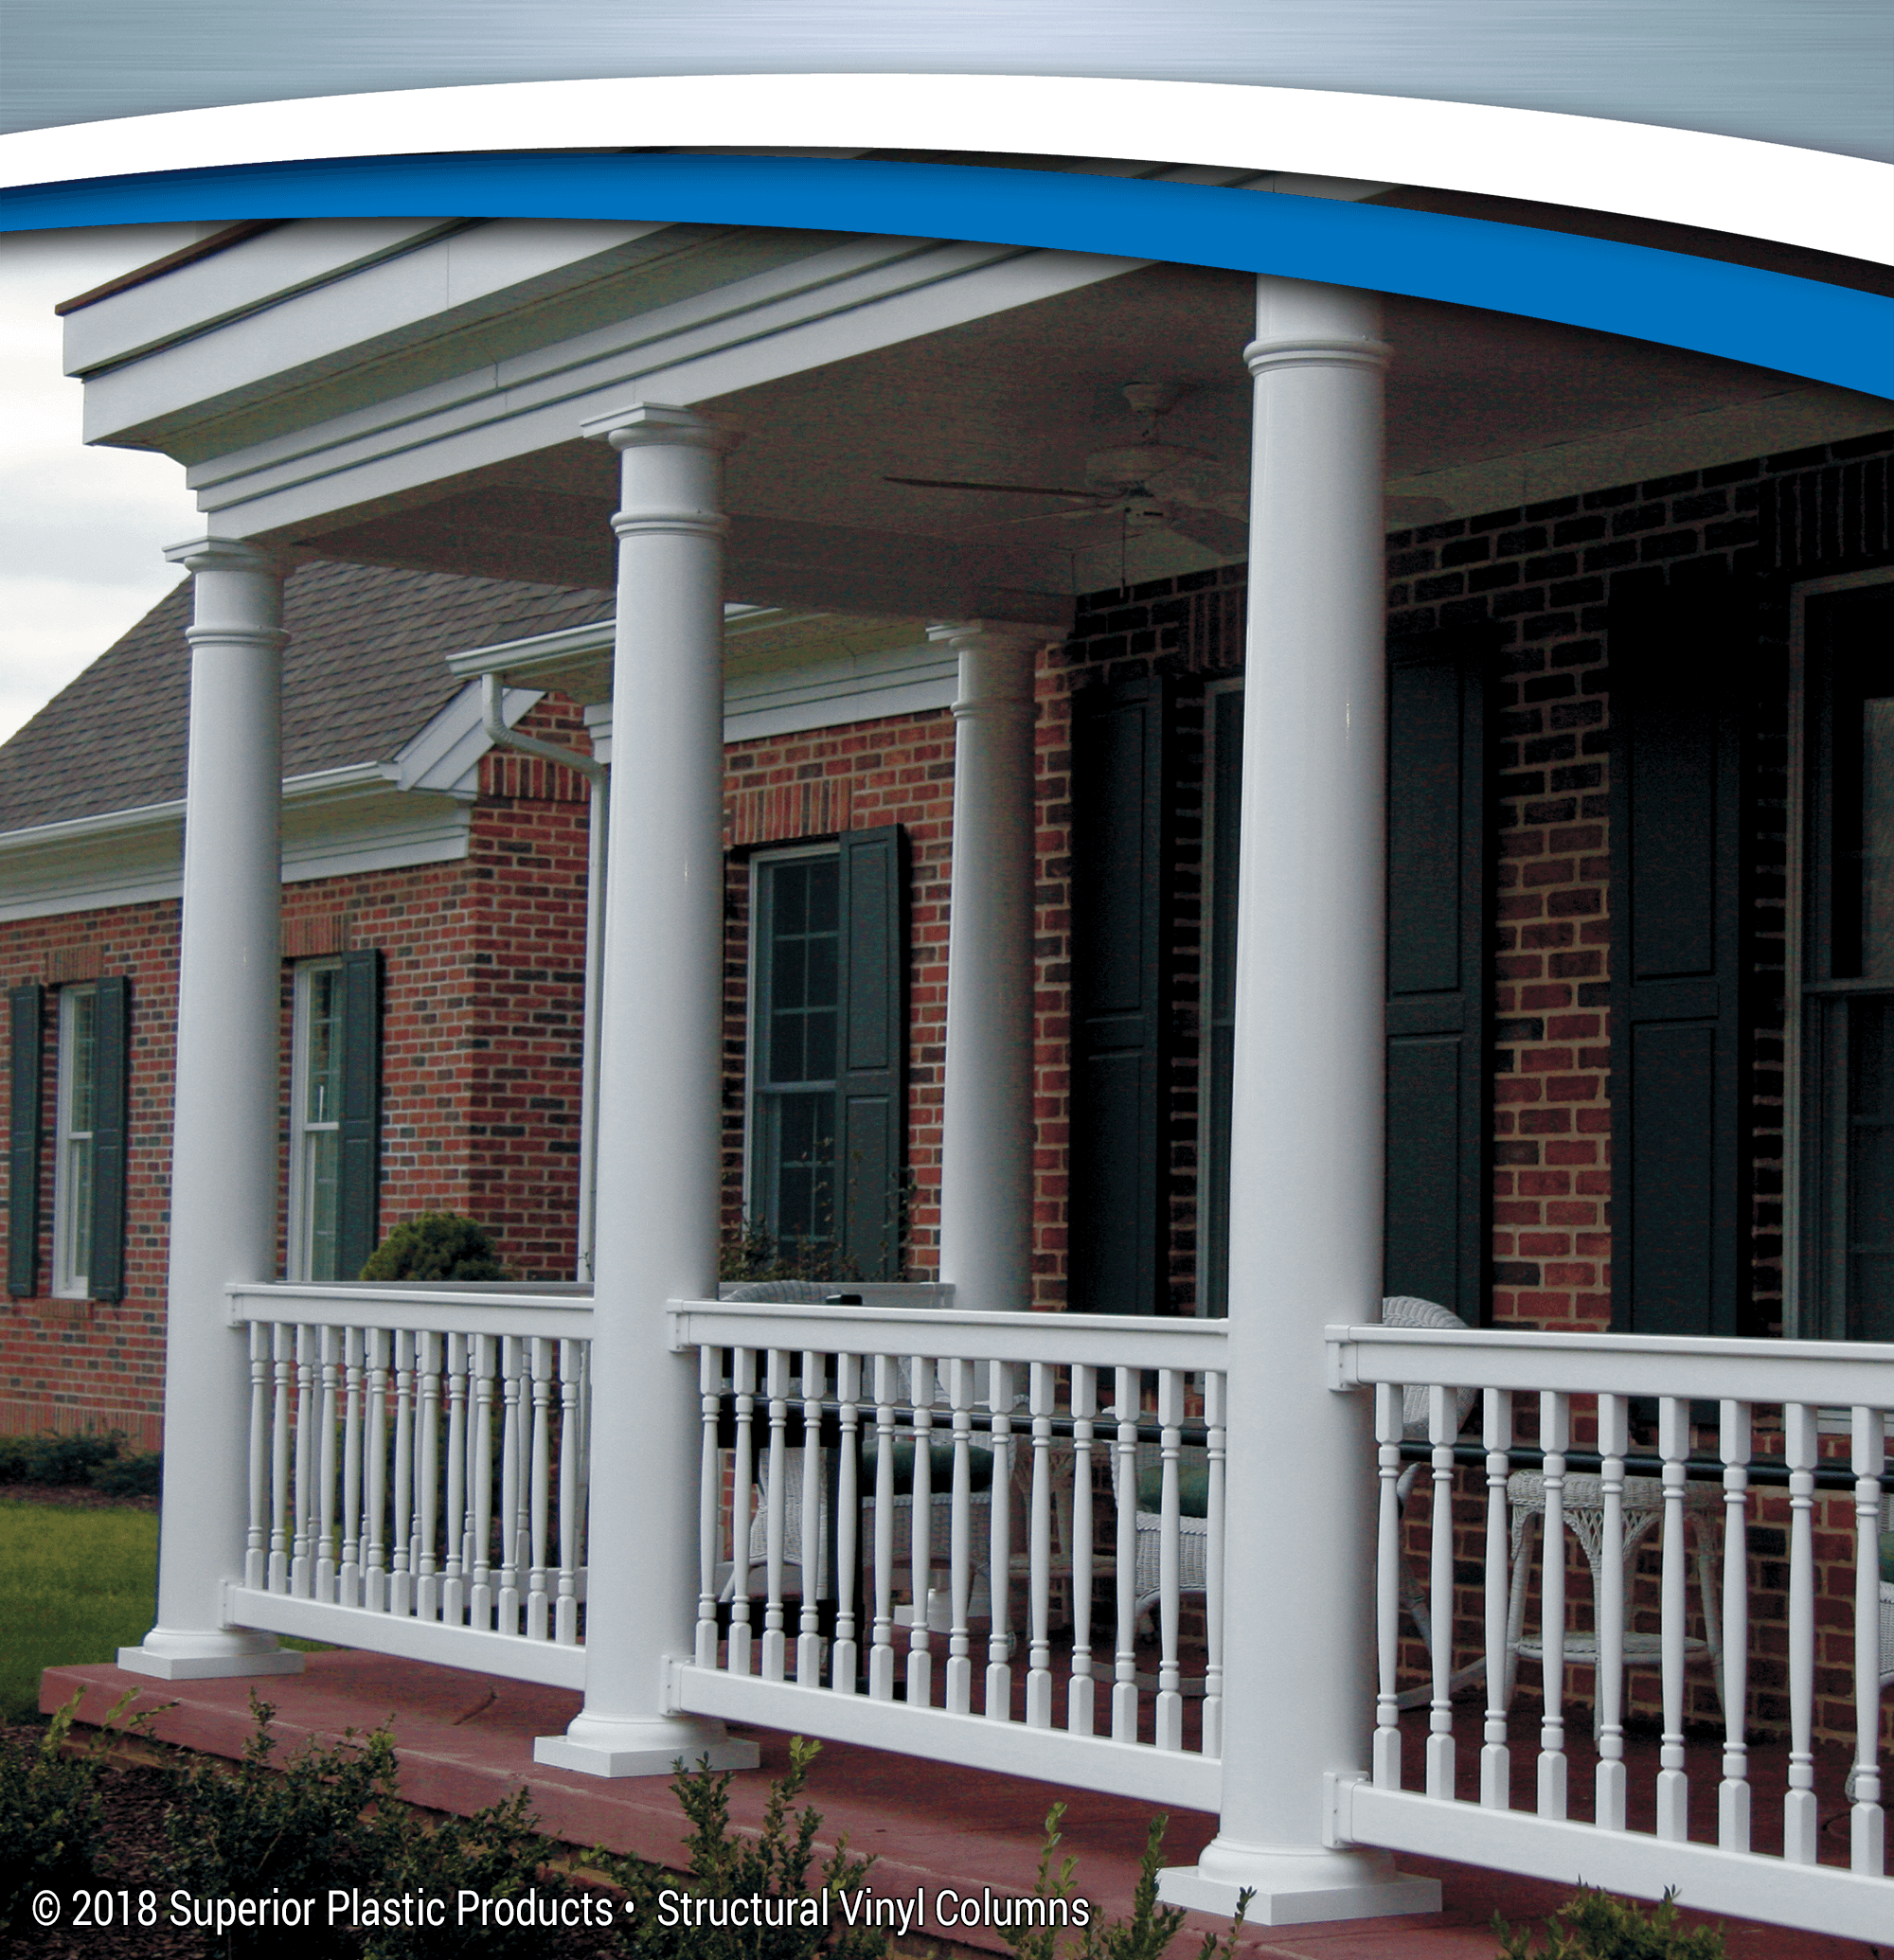 Structural Vinyl Columns - Superior Plastic Products